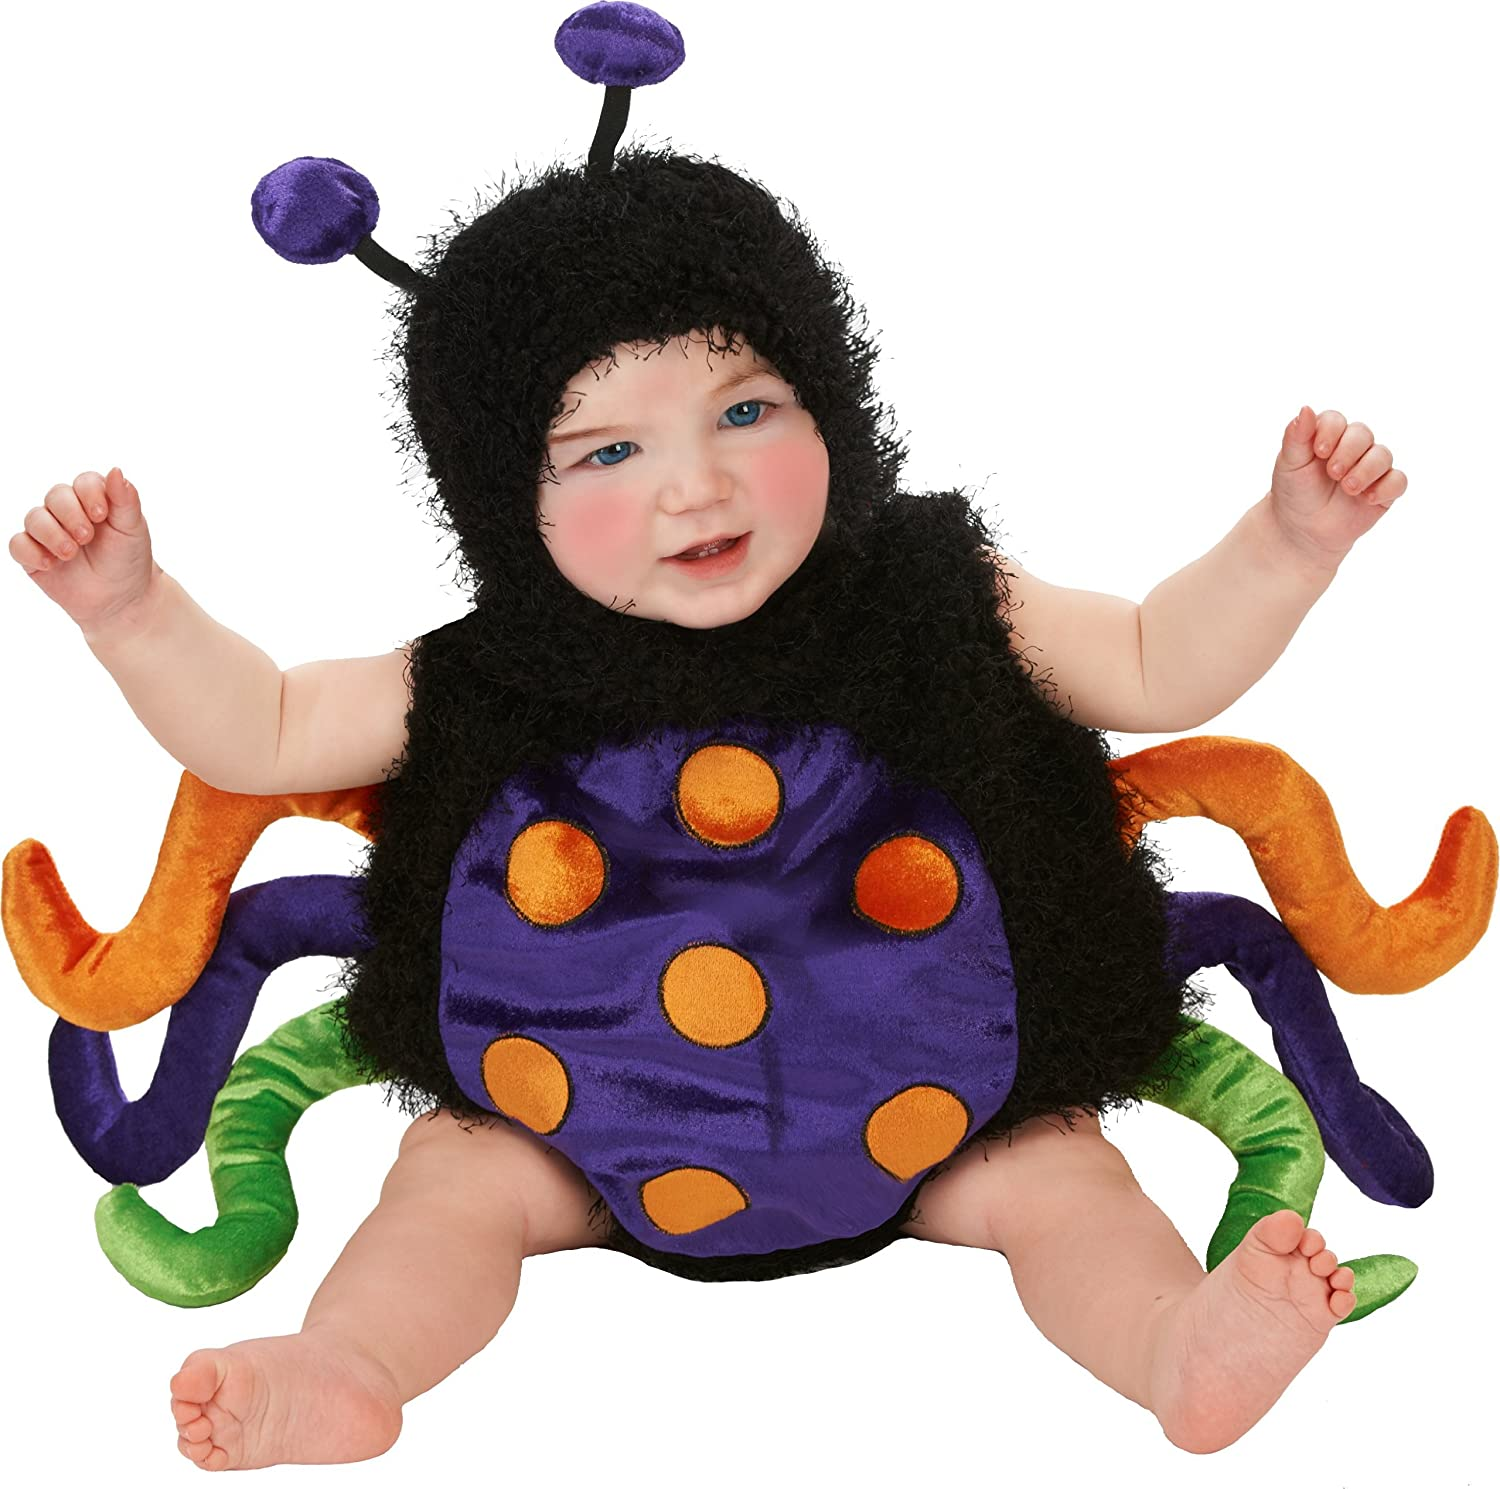 Just Challenge the lowest price of Japan ☆ Pretend Kids Infant Ranking TOP5 Romper 6-12 Months Spider-Multi